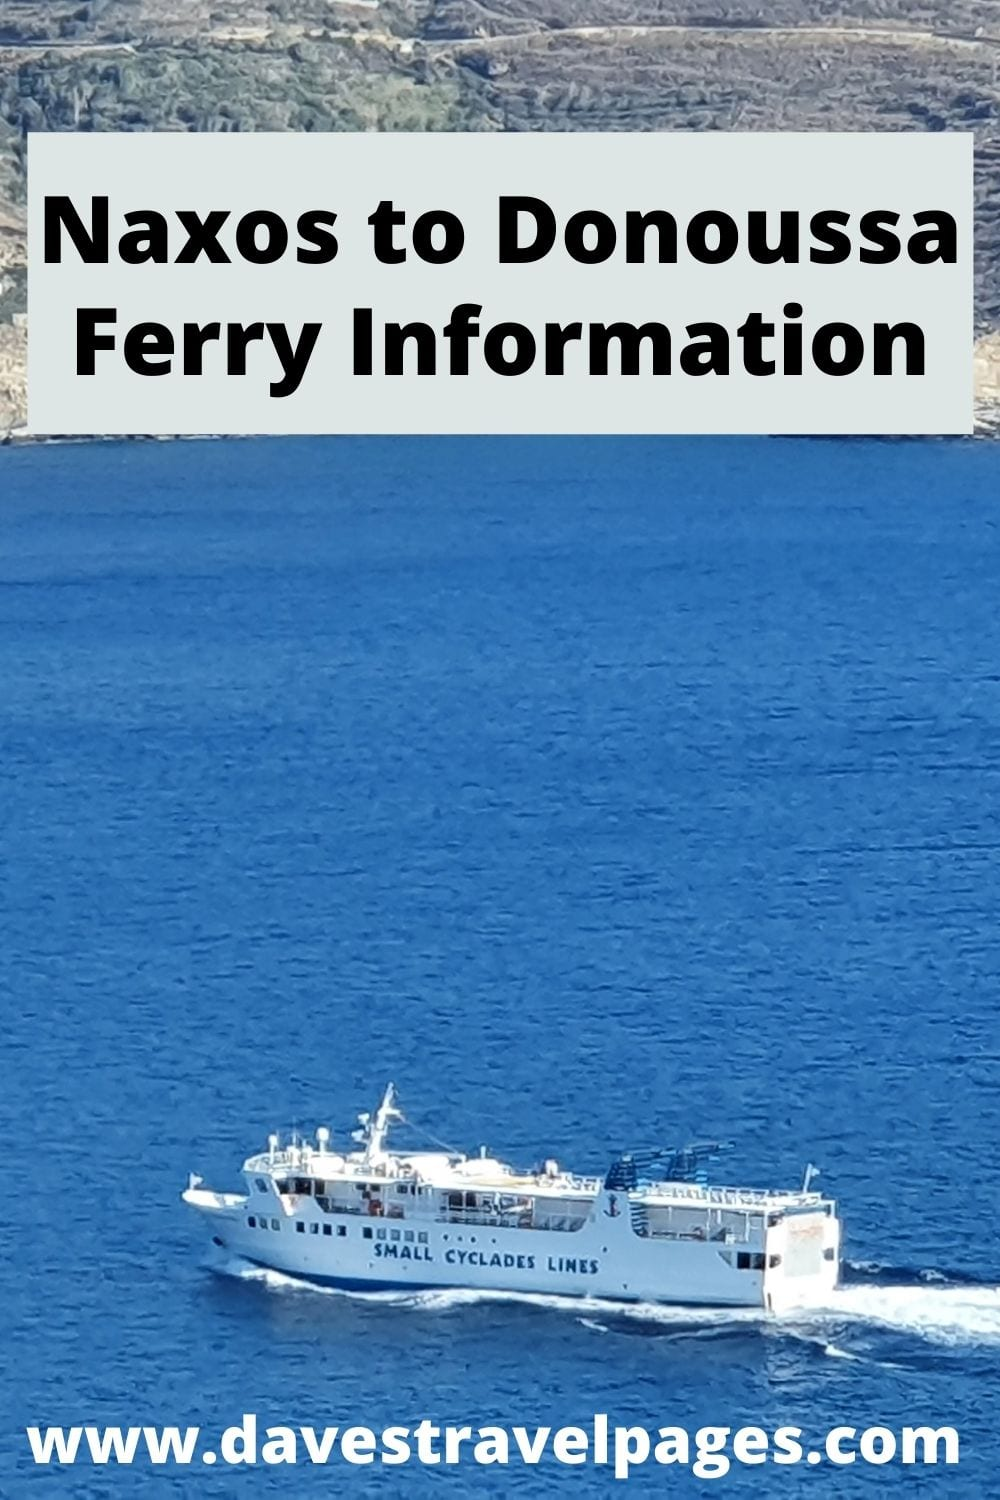 Naxos Donoussa Ferry Information and Travel Tips